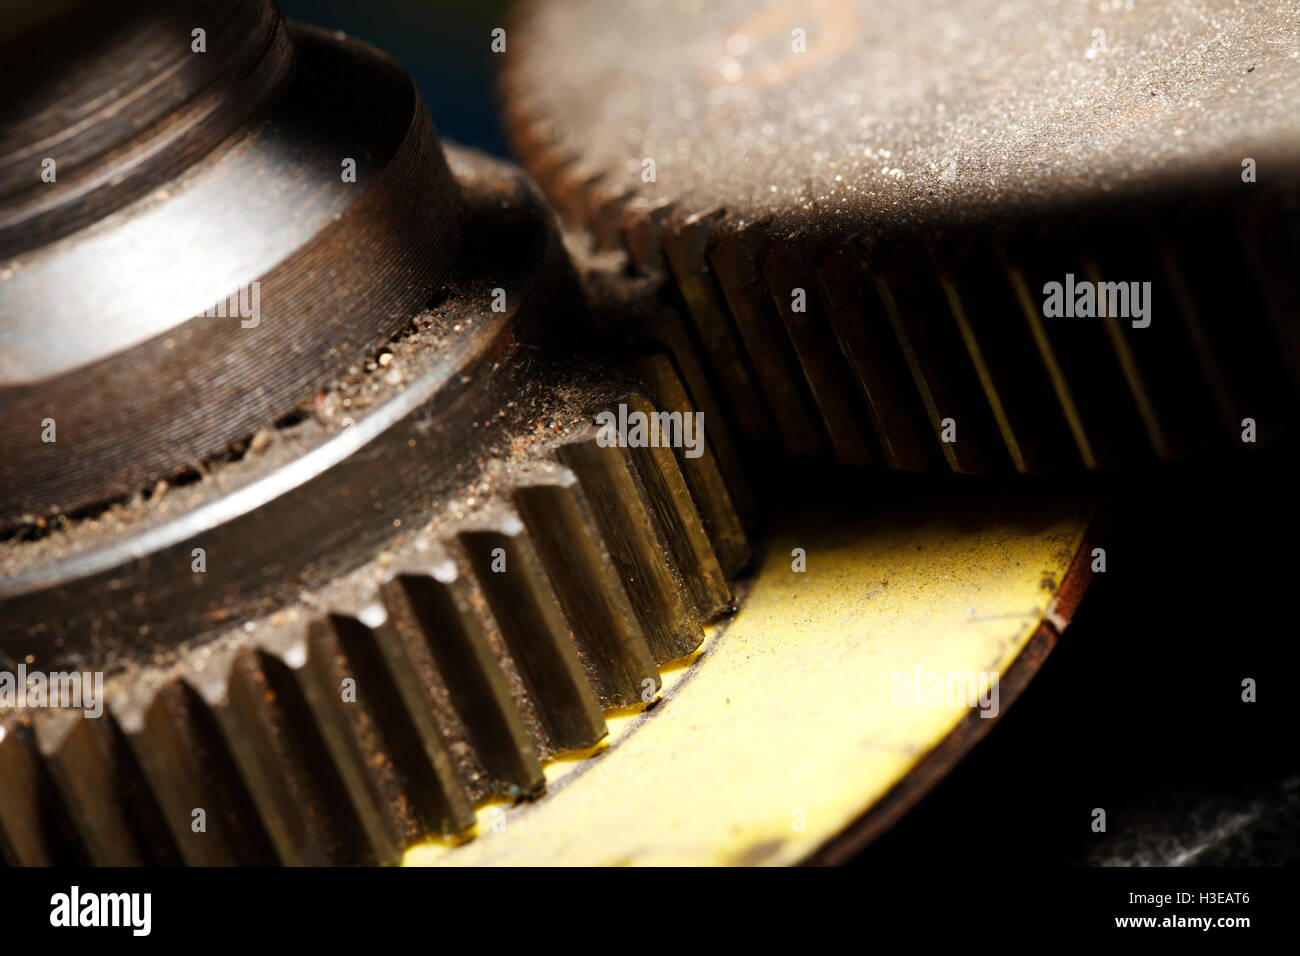 a Iron machine detail close-up , industrial background - Stock Image